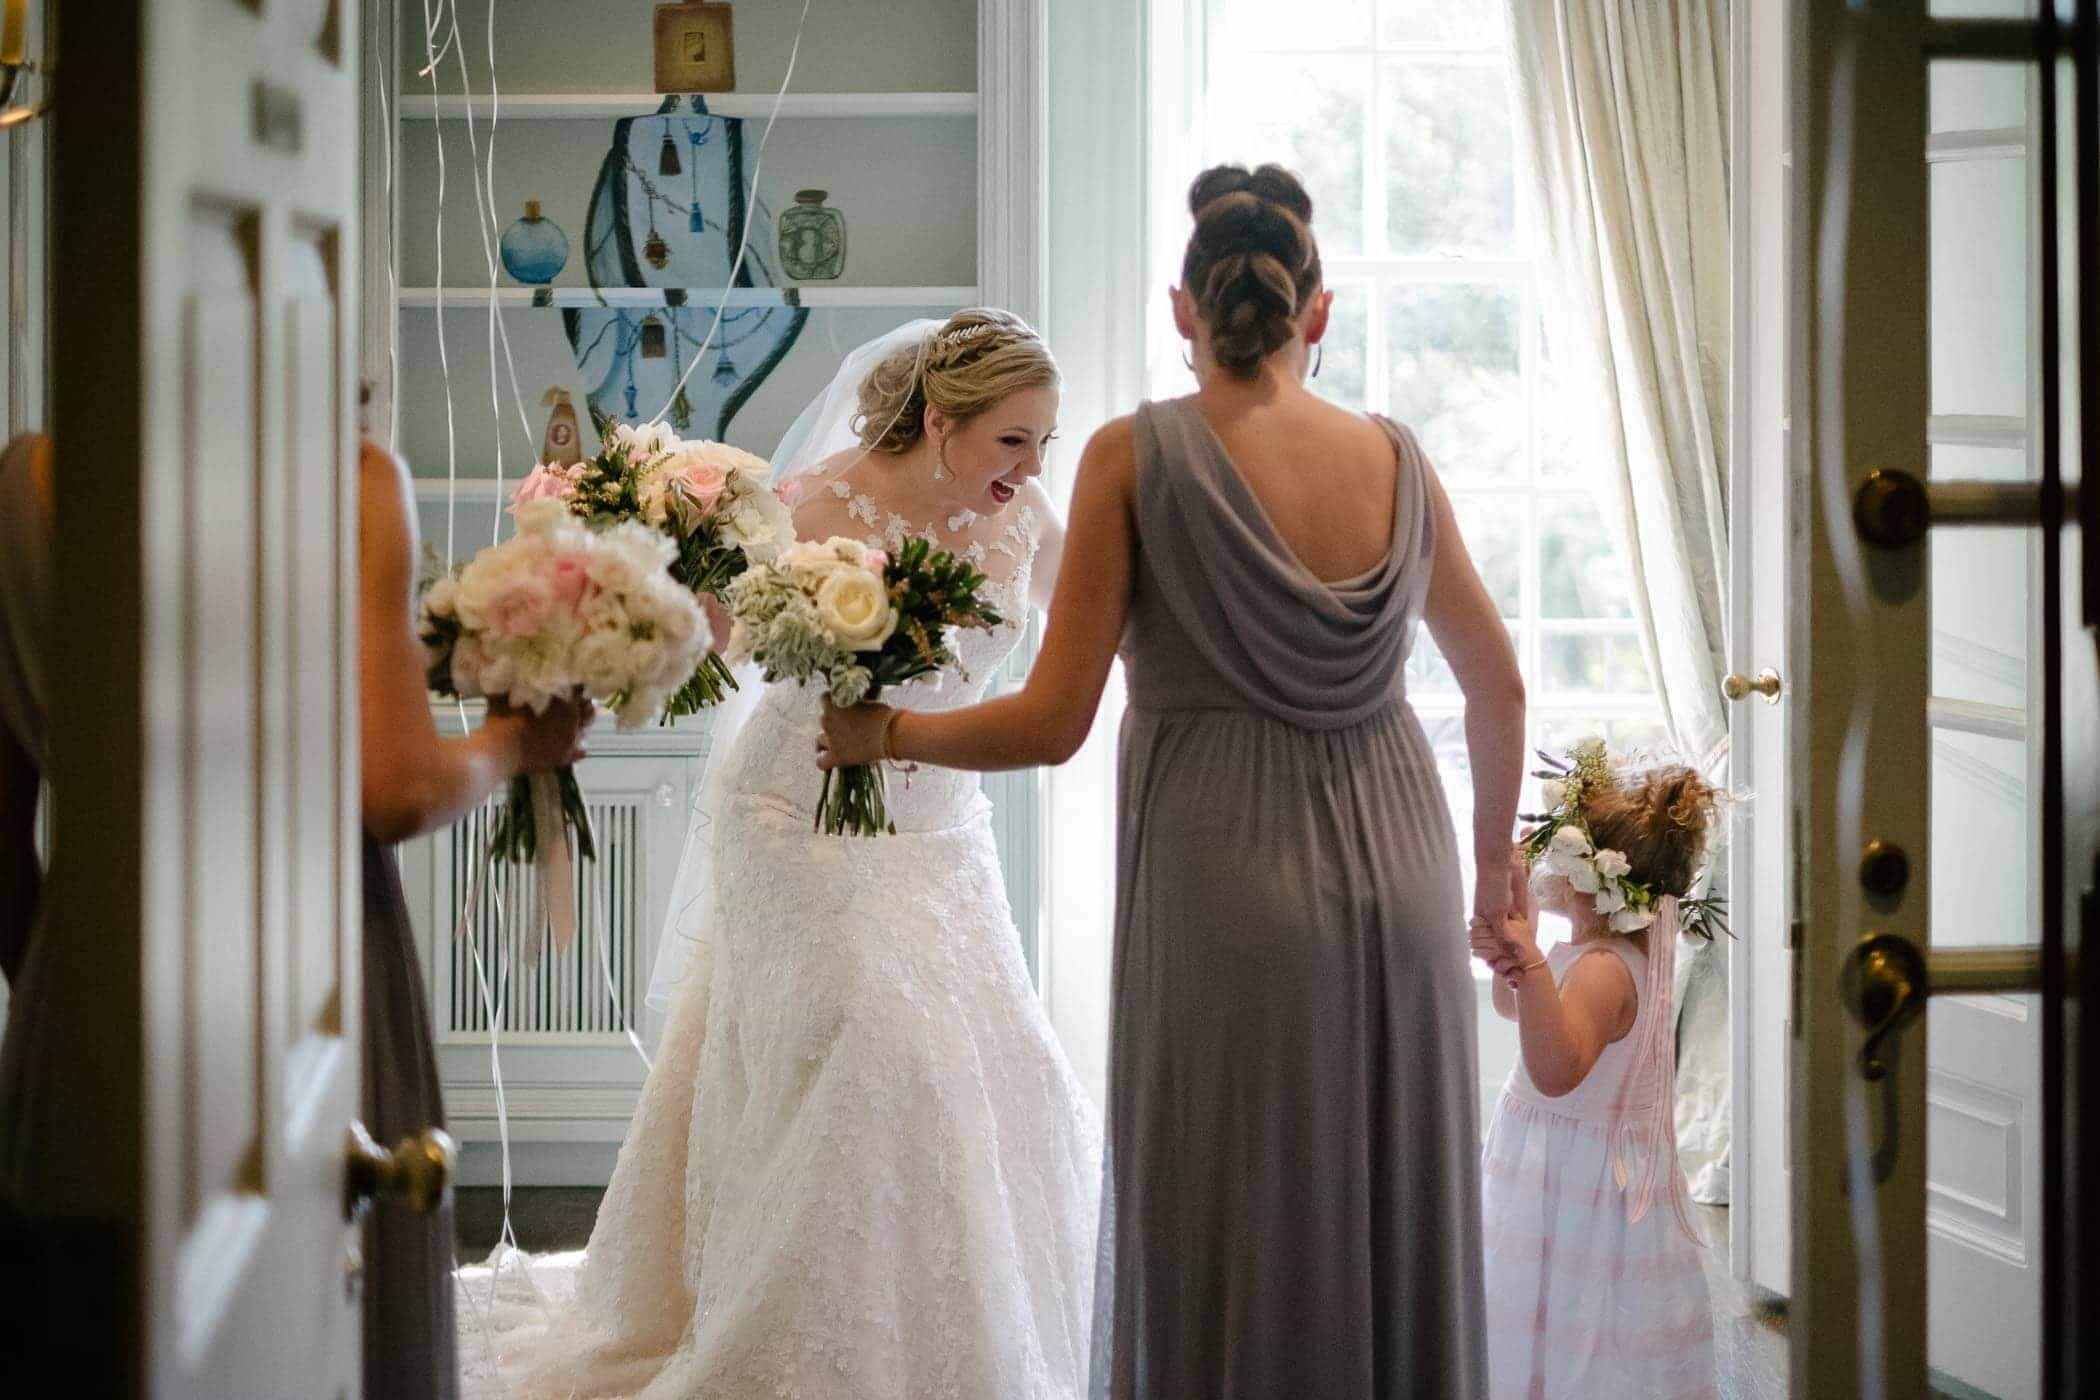 The bride holding flowers smiles enthusiastically at flower girl inside The McLean House at Estates of Sunnybrook wedding. Image by Toronto wedding photographer Pavel Kounine.